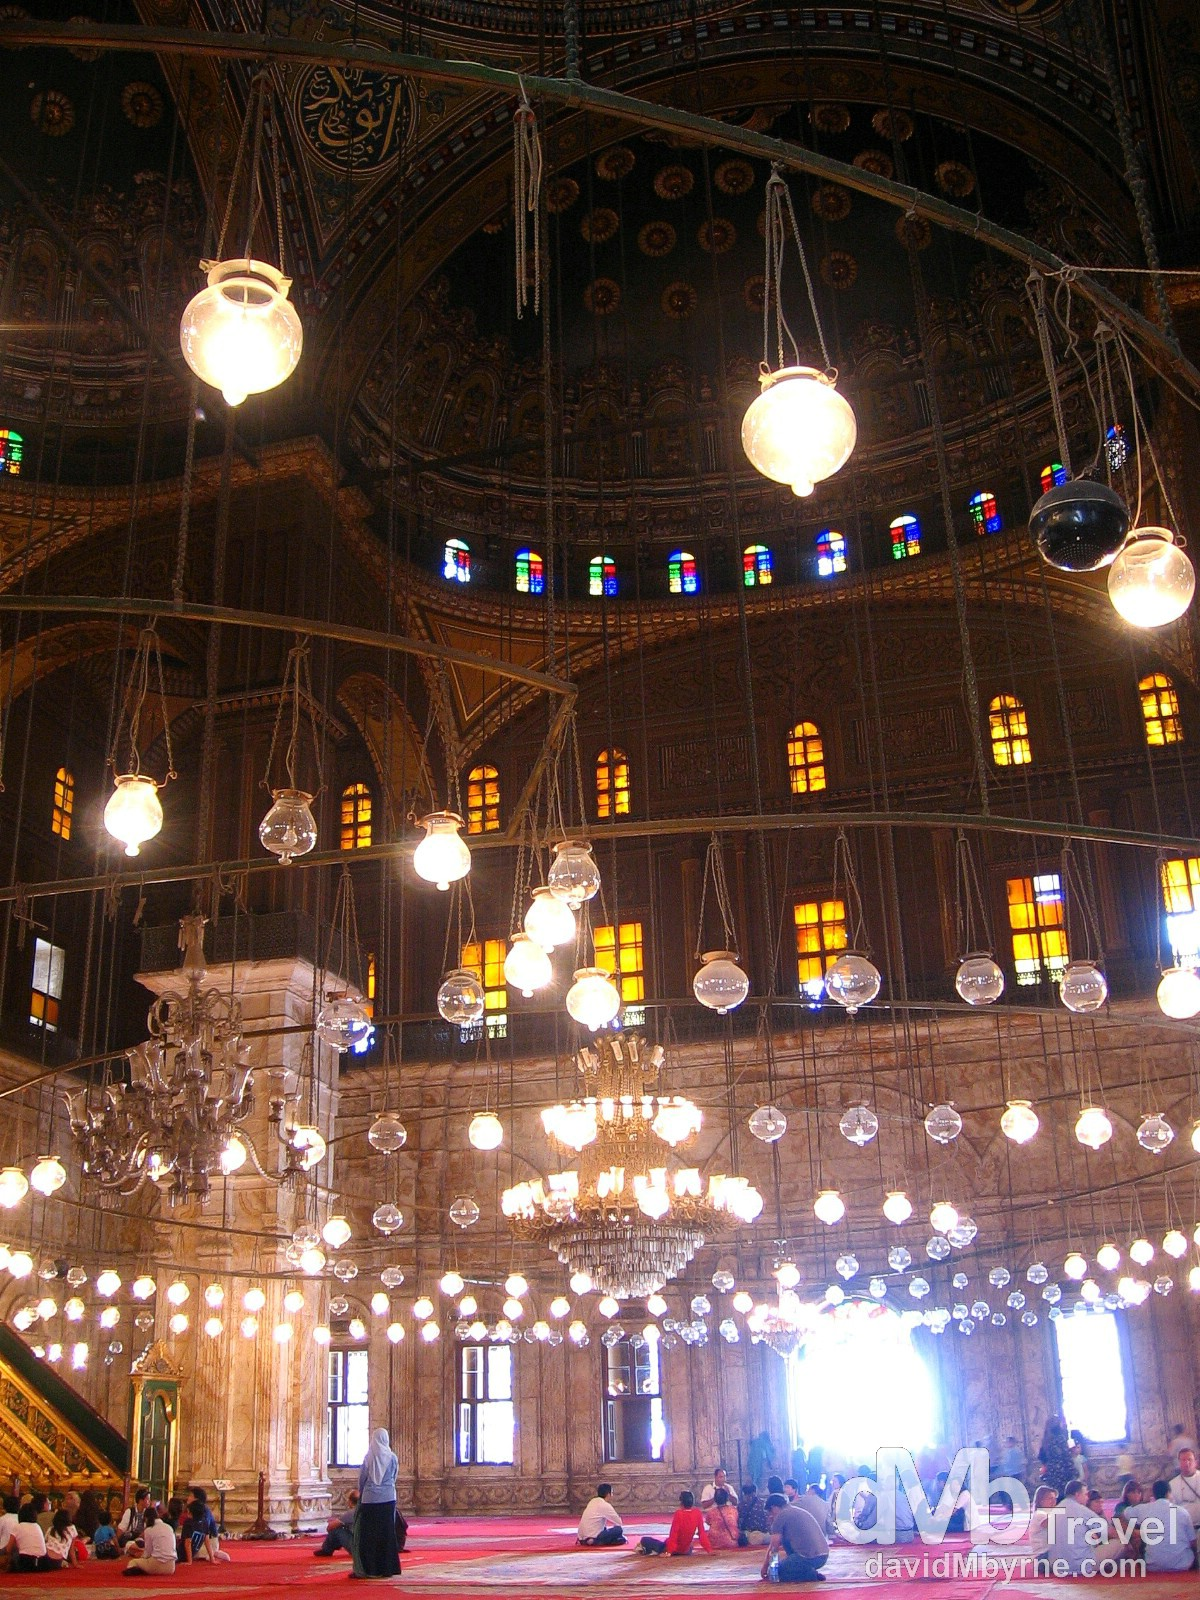 The interior of the Mohammed Ali Mosque, Saladin Citadel, Cairo, Egypt. April 14, 2008.